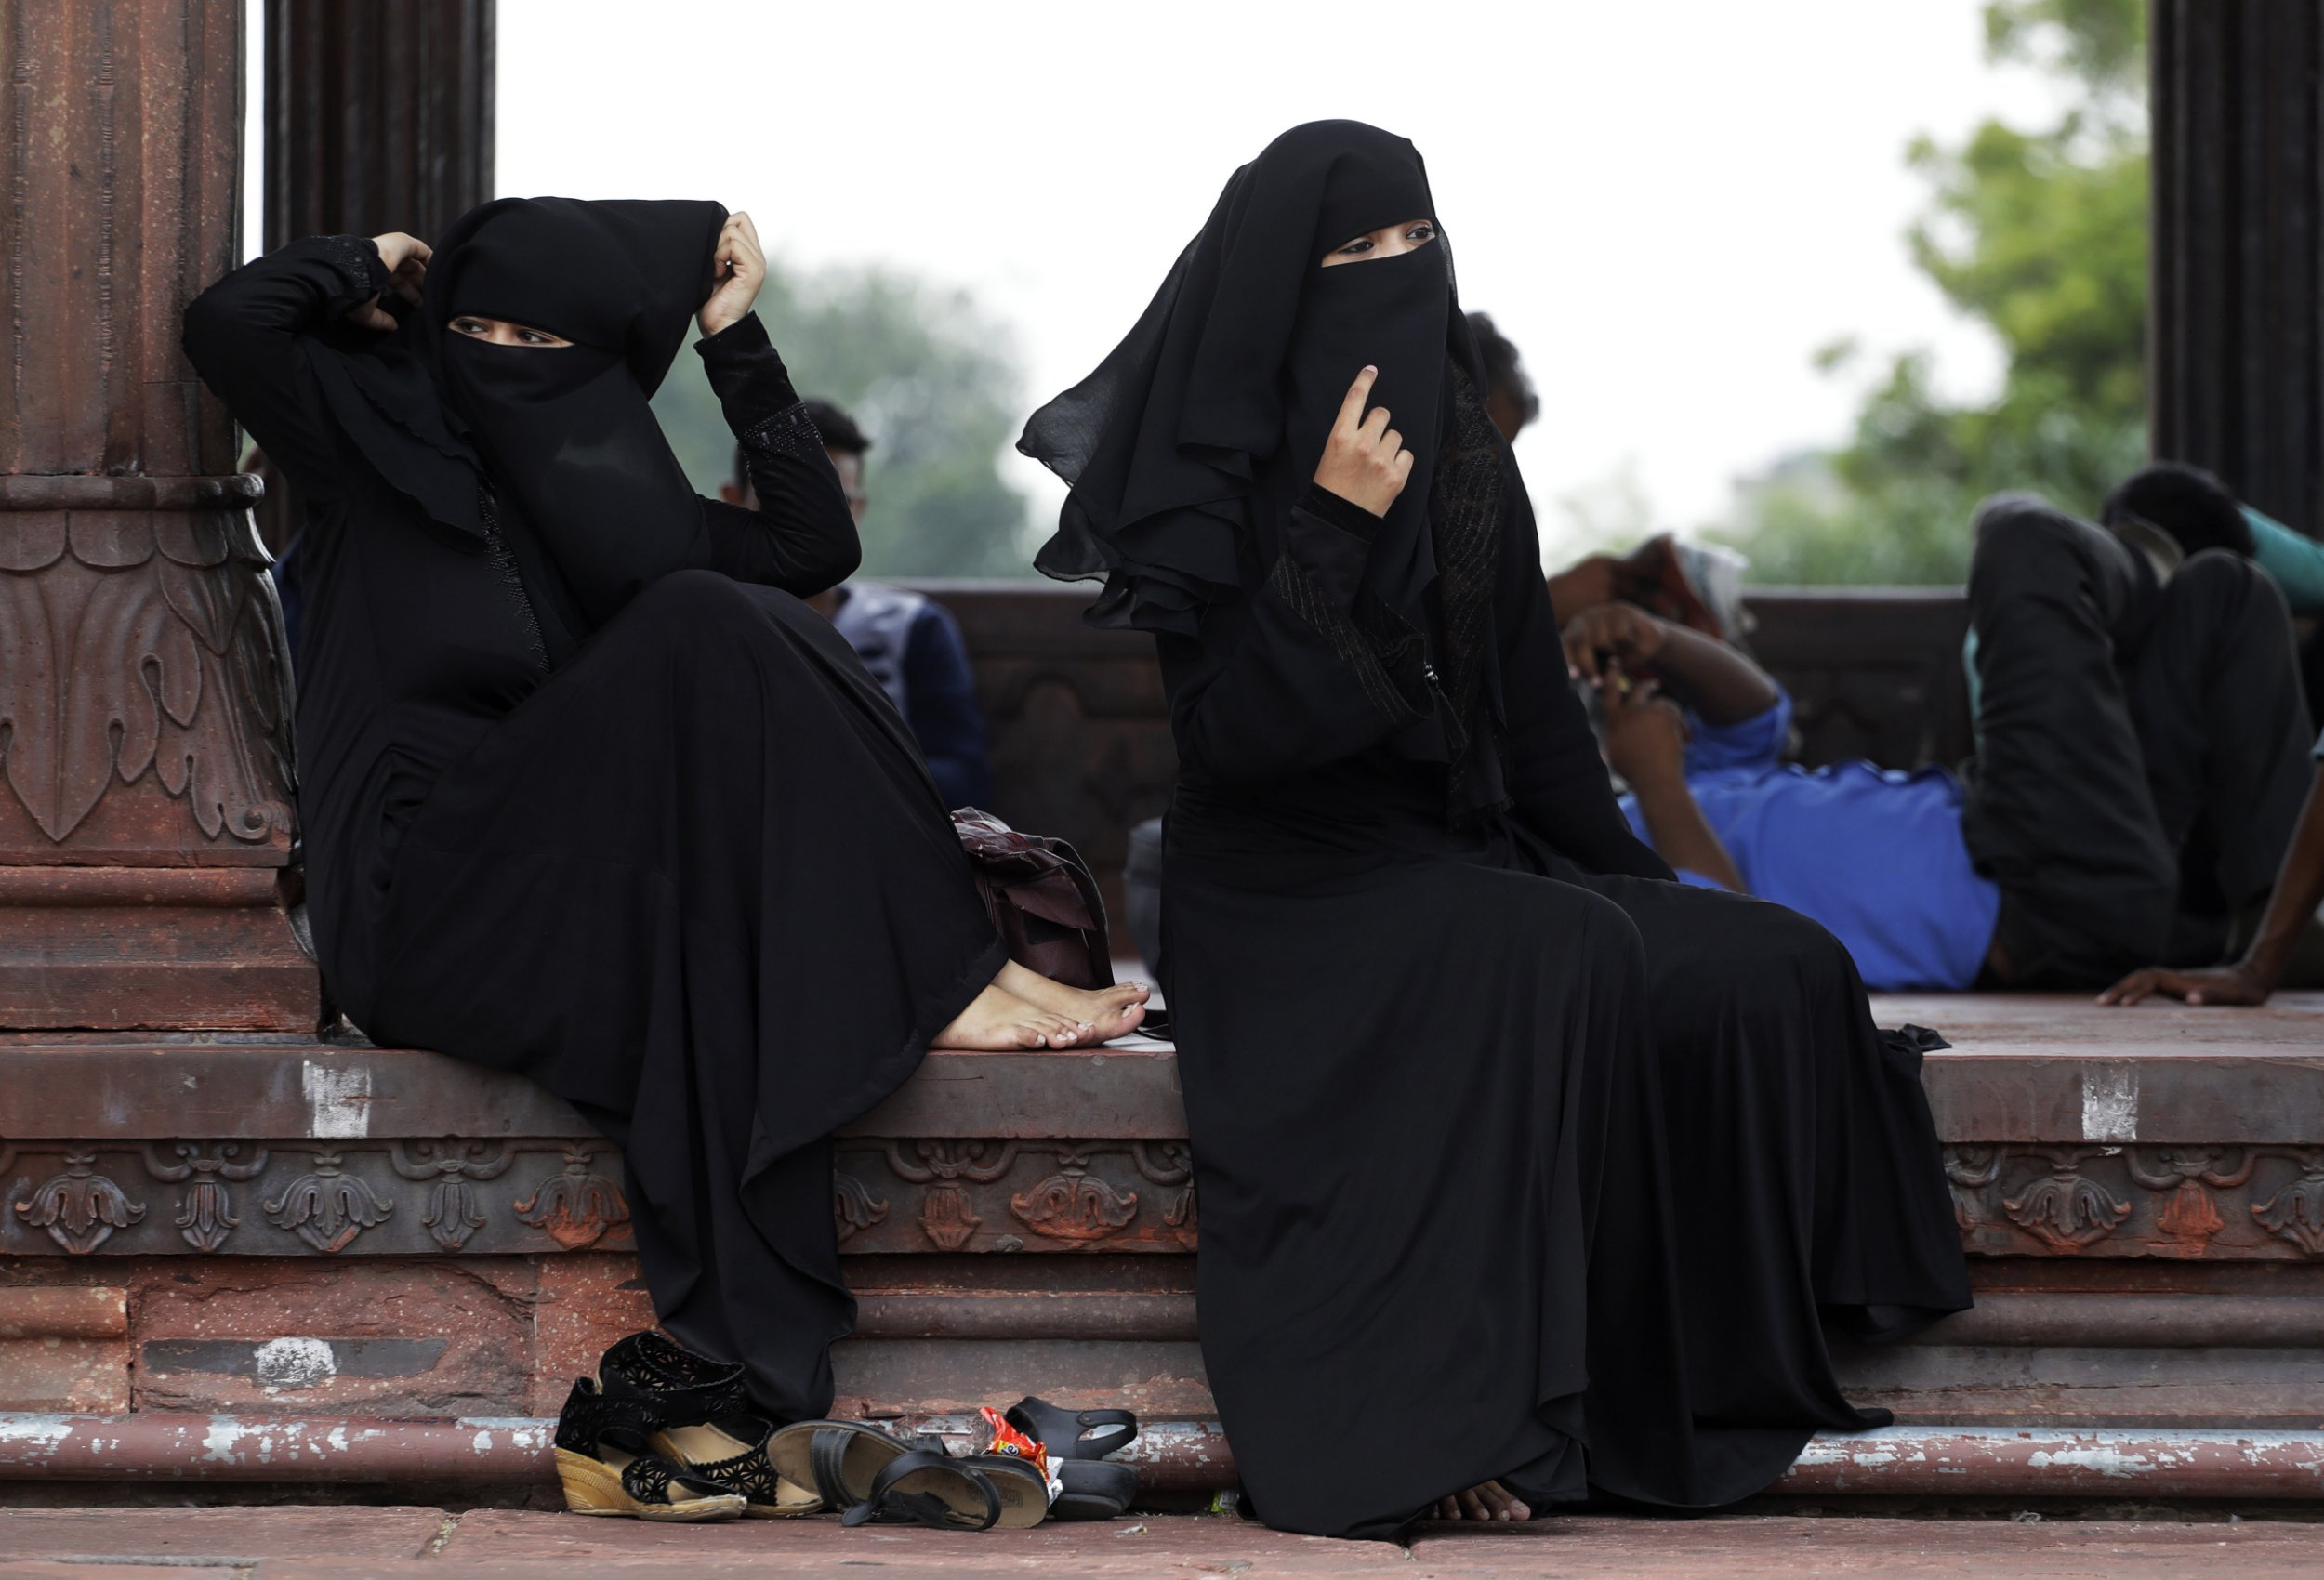 "FILE - In this Aug. 22, 2017 file photo, Indian Muslim women rest inside Jama Masjid mosque in New Delhi, India. India's government on Wednesday, Sept. 19, 2018, approved an ordinance to implement a top court ruling striking down the Muslim practice that allows men to instantly divorce. The government decision came after it failed to get approval of Parliament a year after the court ruled that the practice of triple ""talaq"" violated the constitutional rights of Muslim women. (AP Photo/Tsering Topgyal, File)"